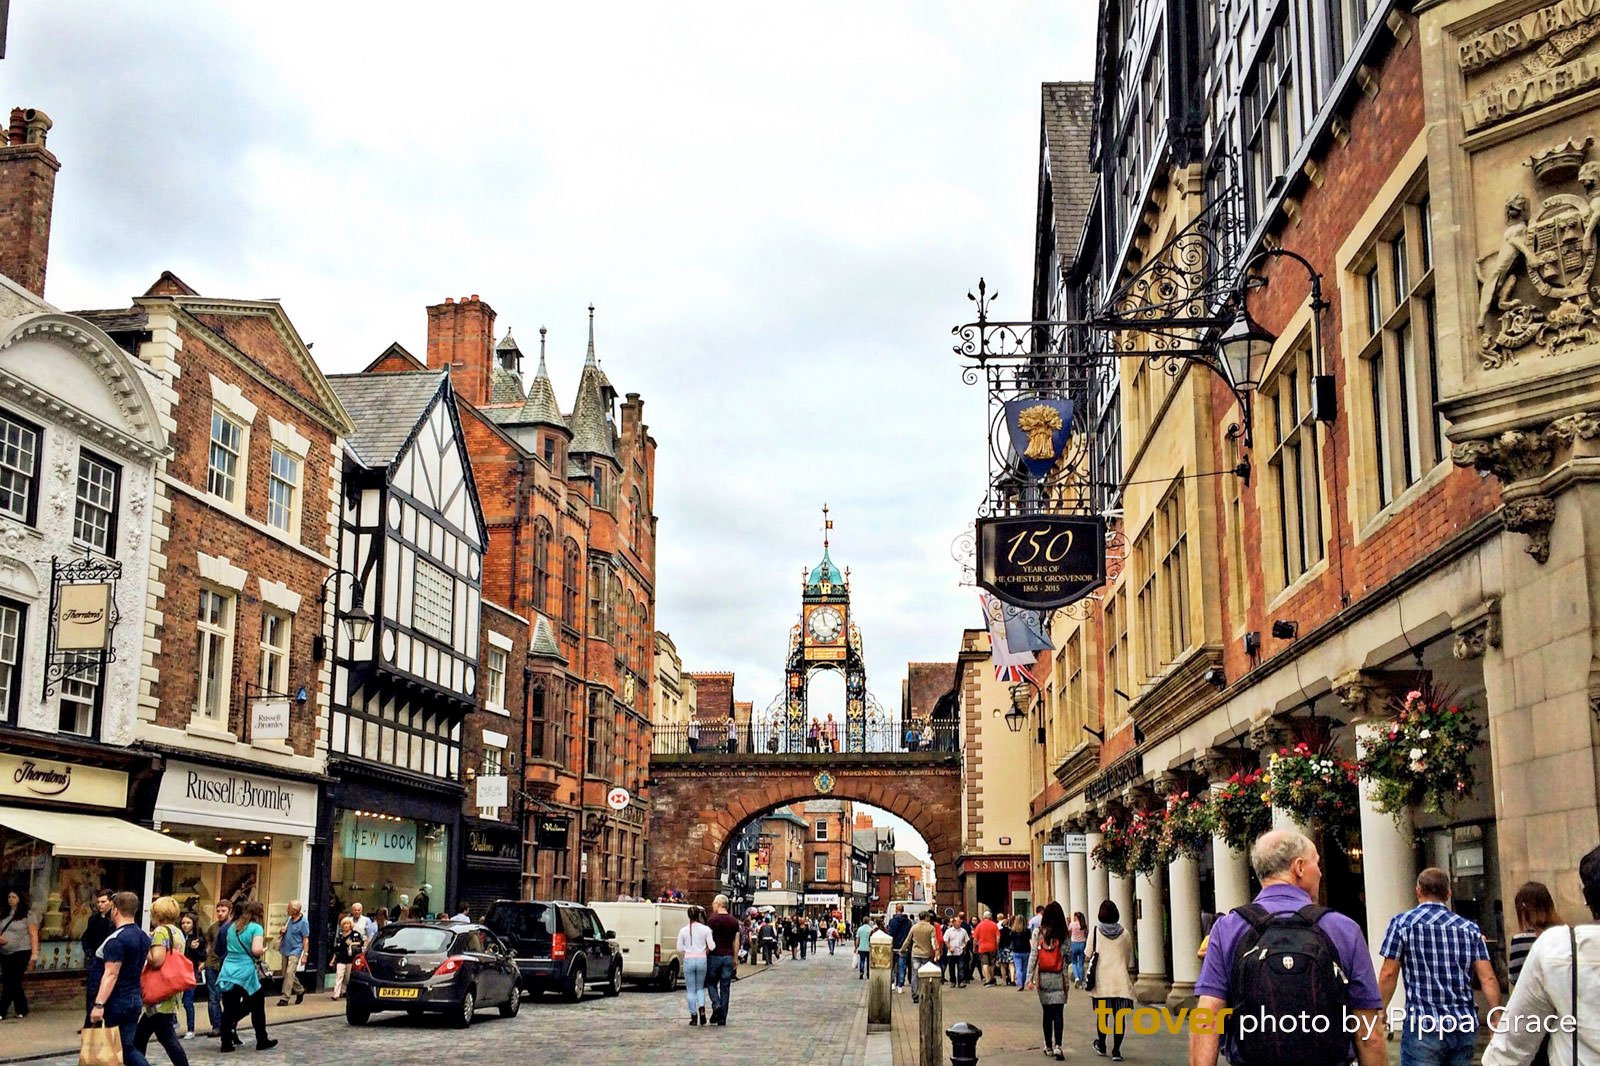 Shopping and Sightseeing in Cheshire